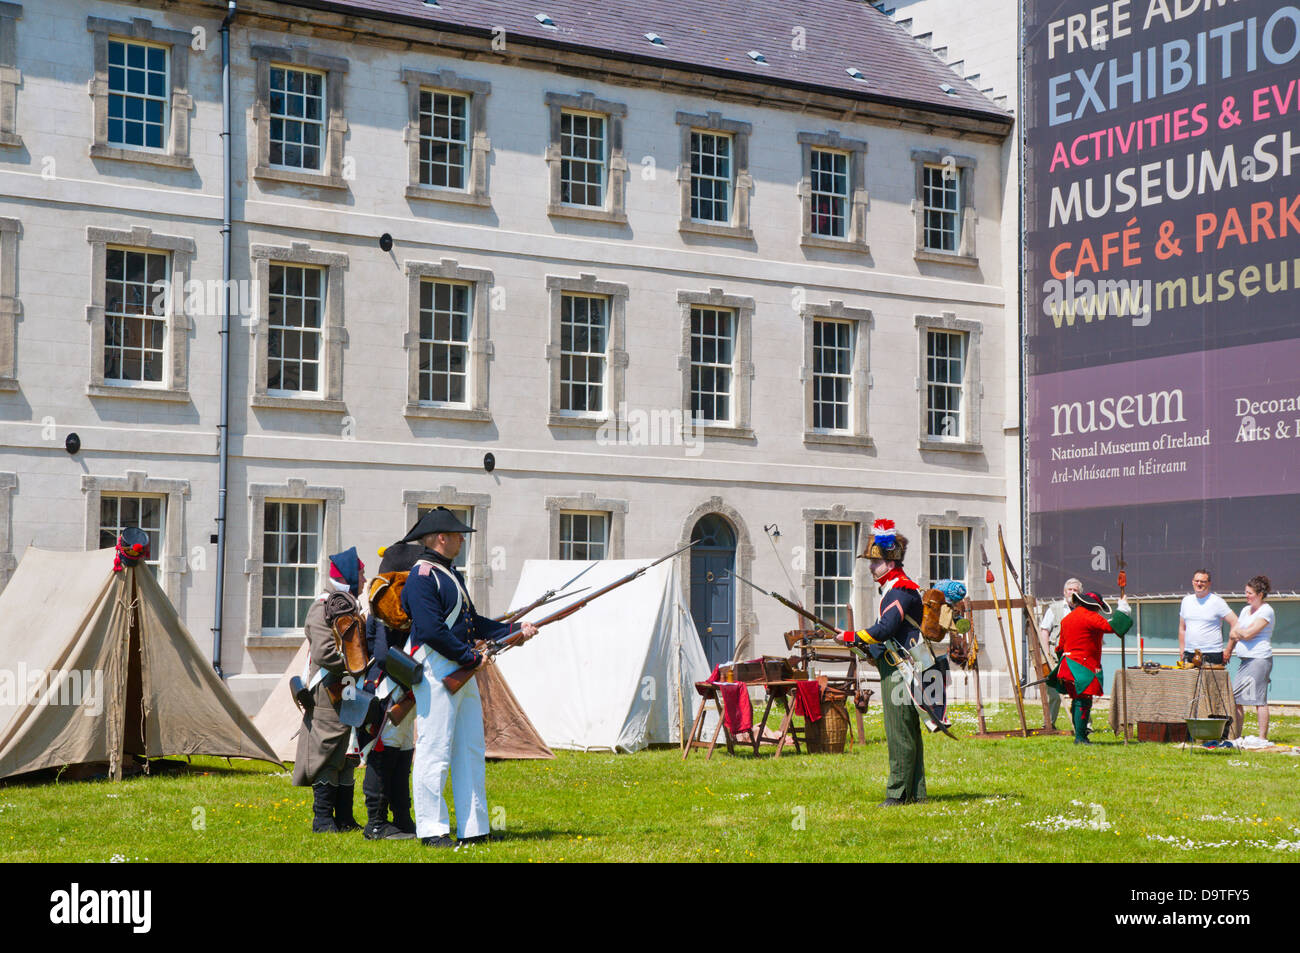 Historical army exhibition outside National museum of decorative arts and history Dublin Ireland Europe - Stock Image